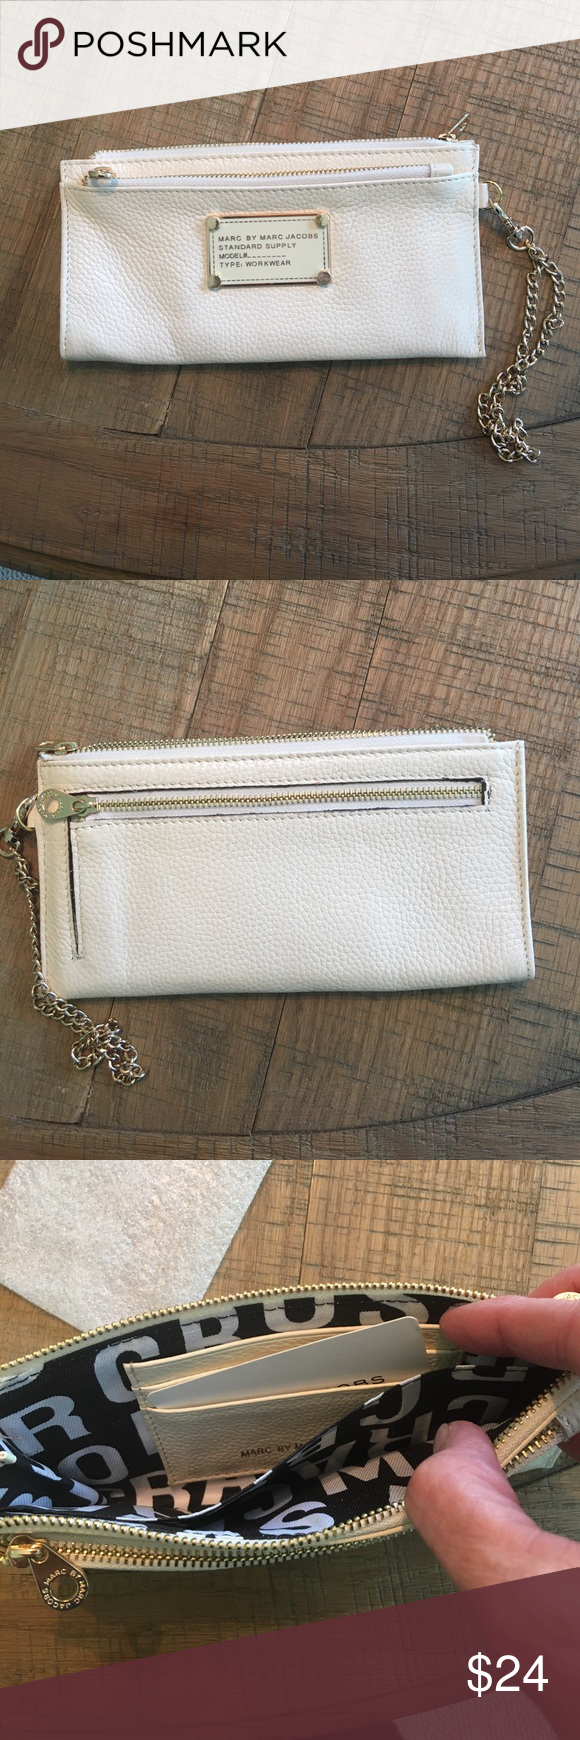 Wristlet in cream Wristlet in cream. Can be used as a wallet as chain detached. Measures 7.5 inches long by 4 inches high Bags Clutches & Wristlets